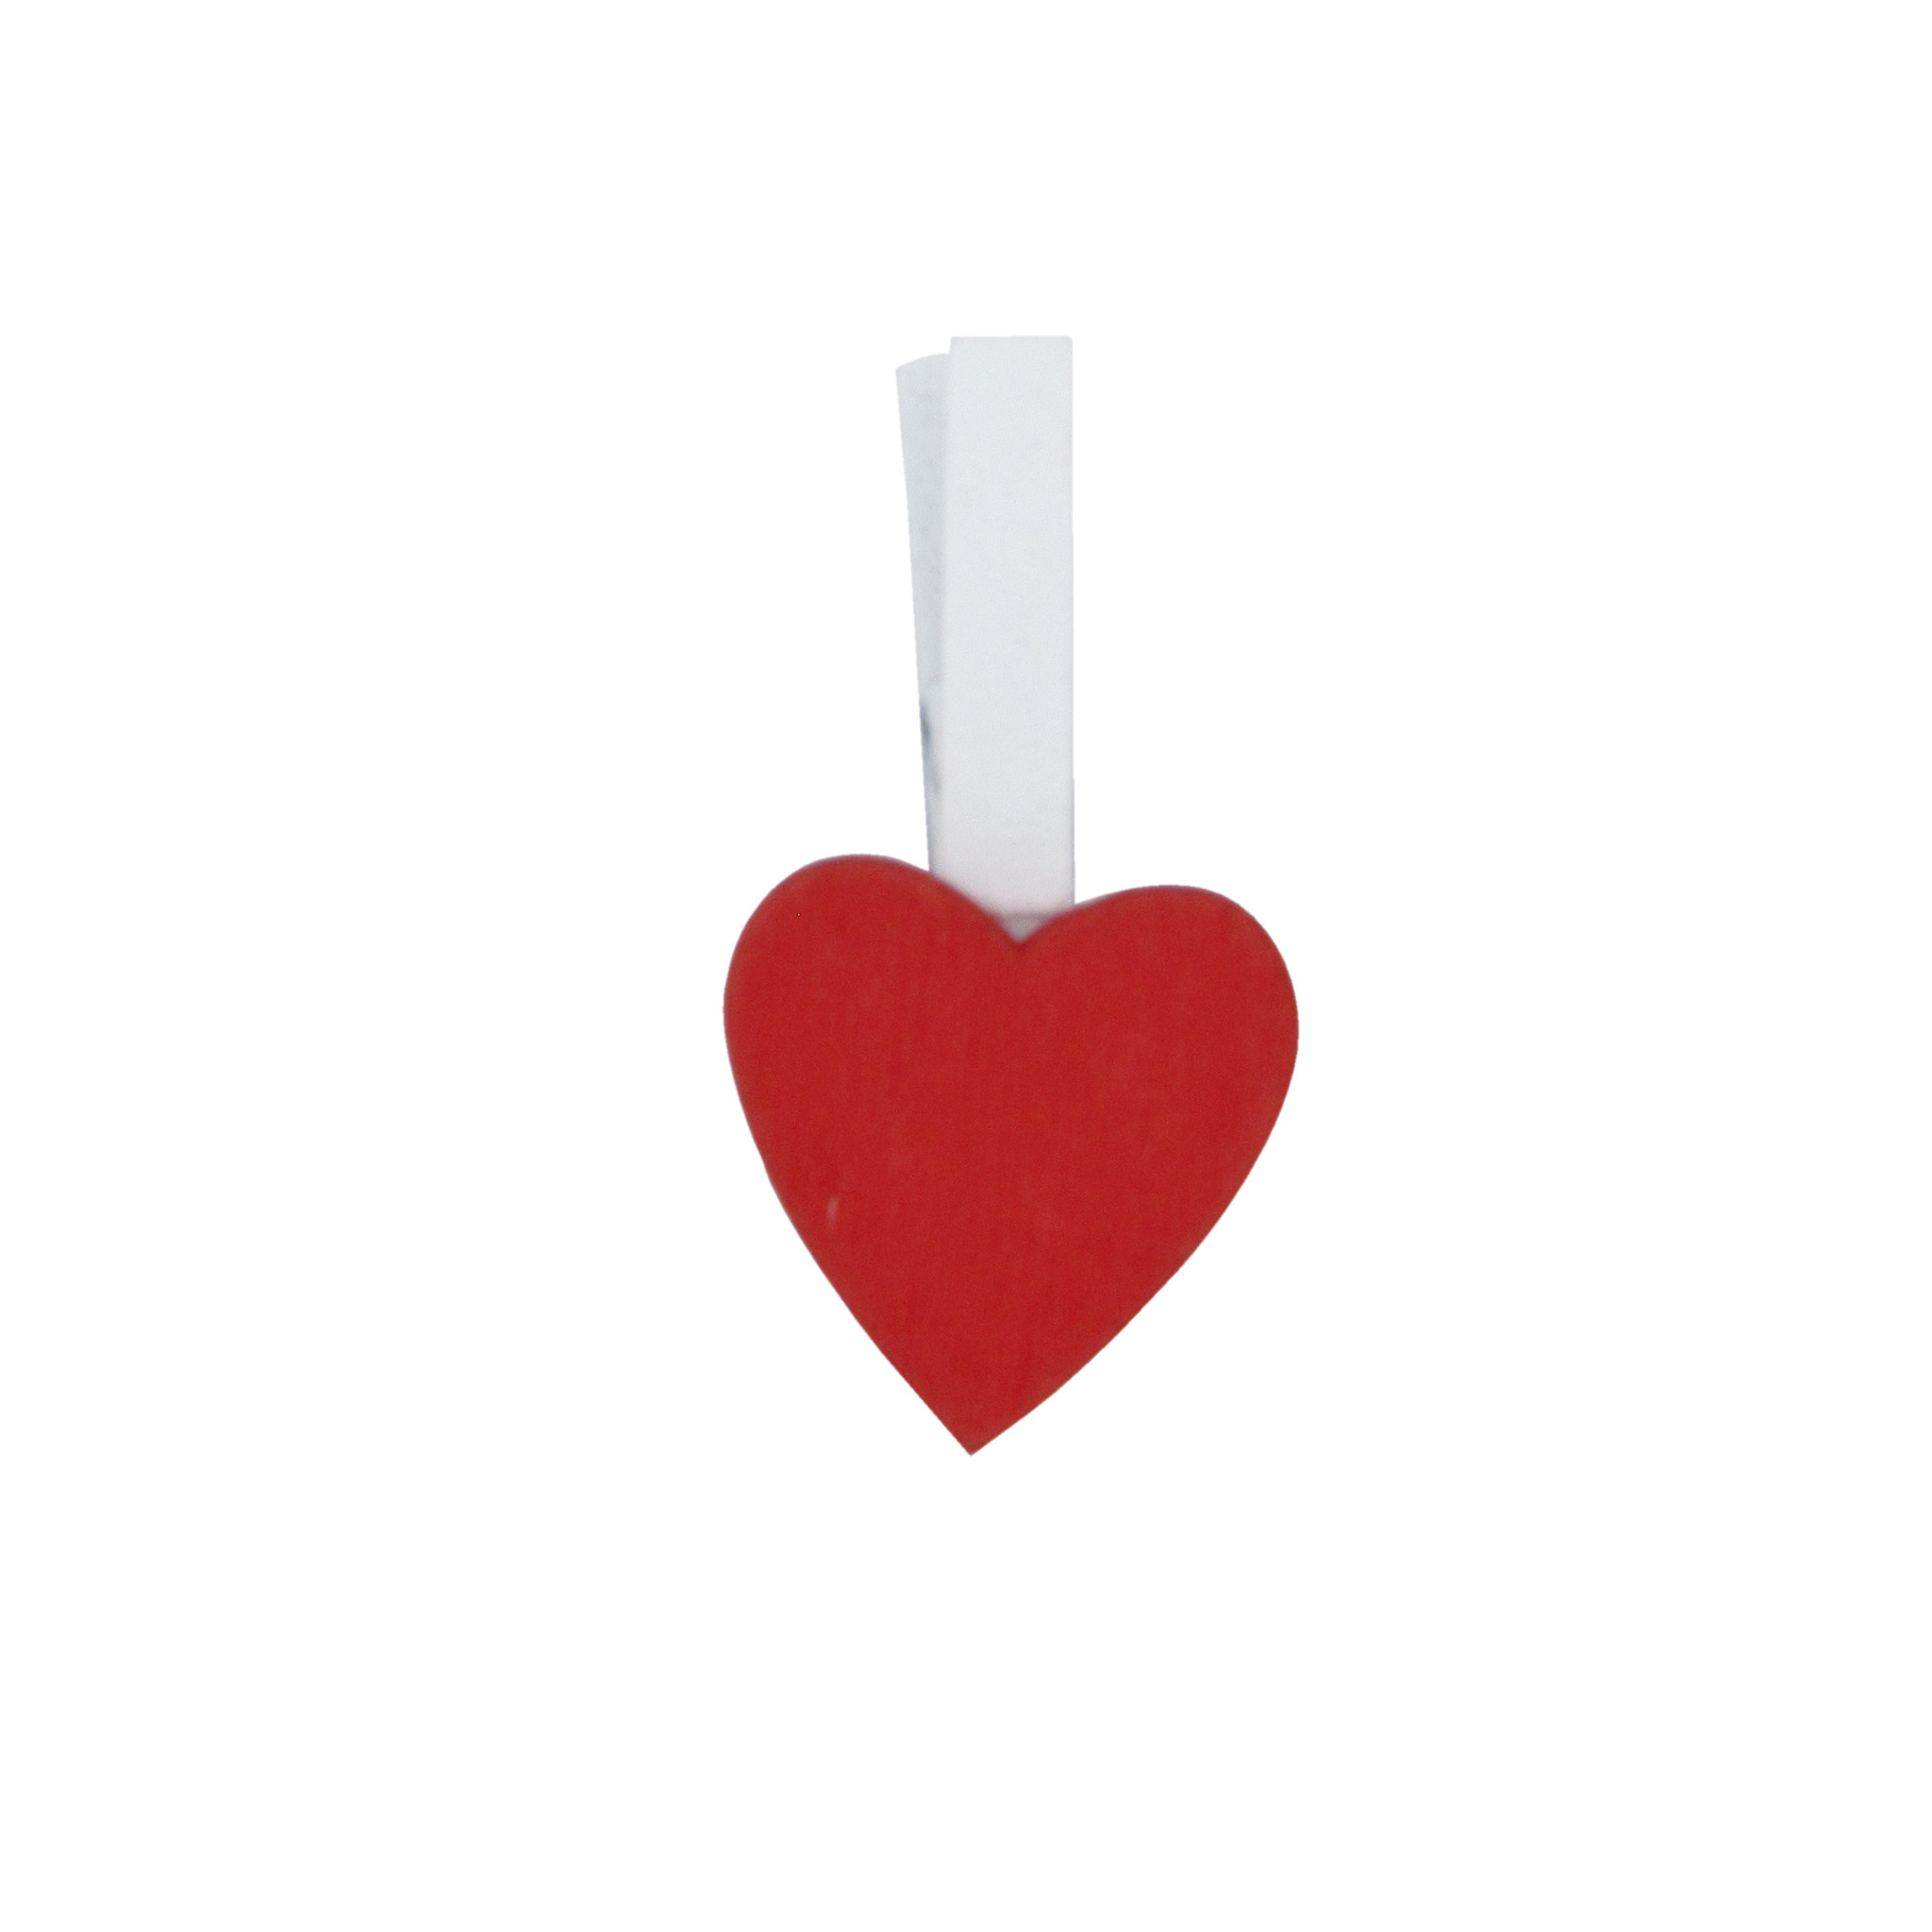 """Wooden clip """"Small Heart"""" - Red - 18*18mm - 36 pieces"""